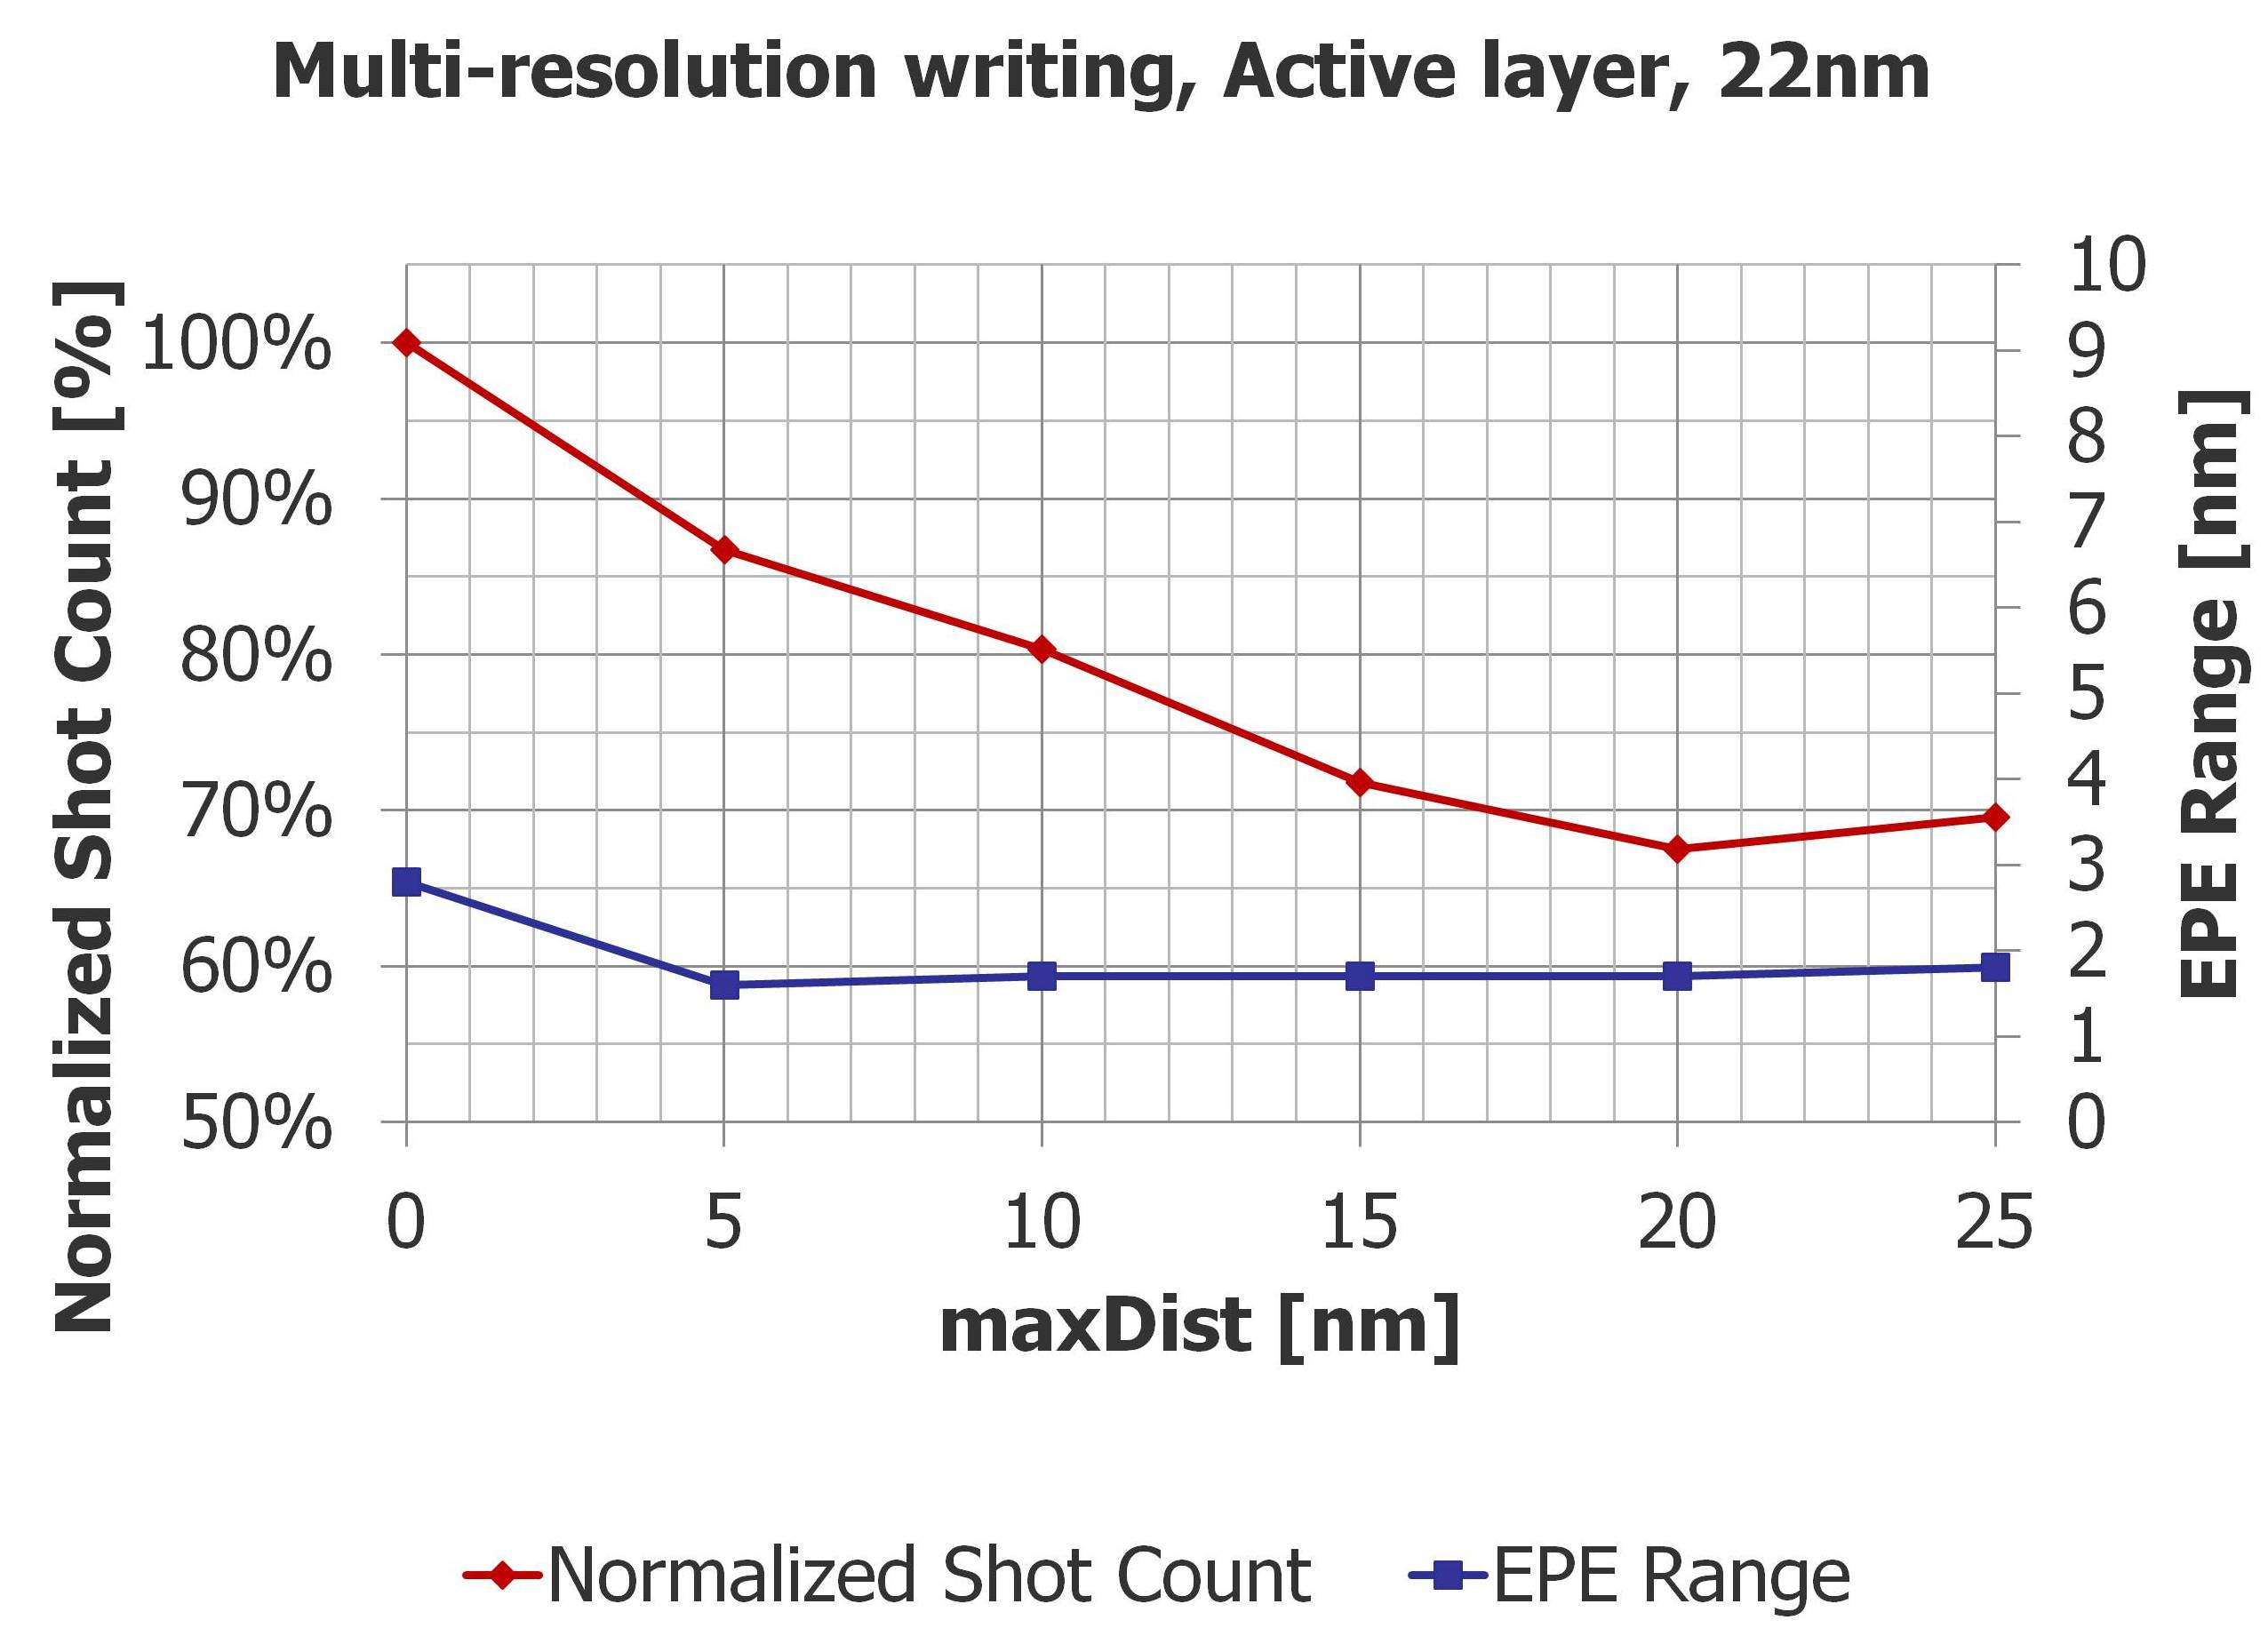 Reducing Mask Write-Time—Which Strategy is Best?